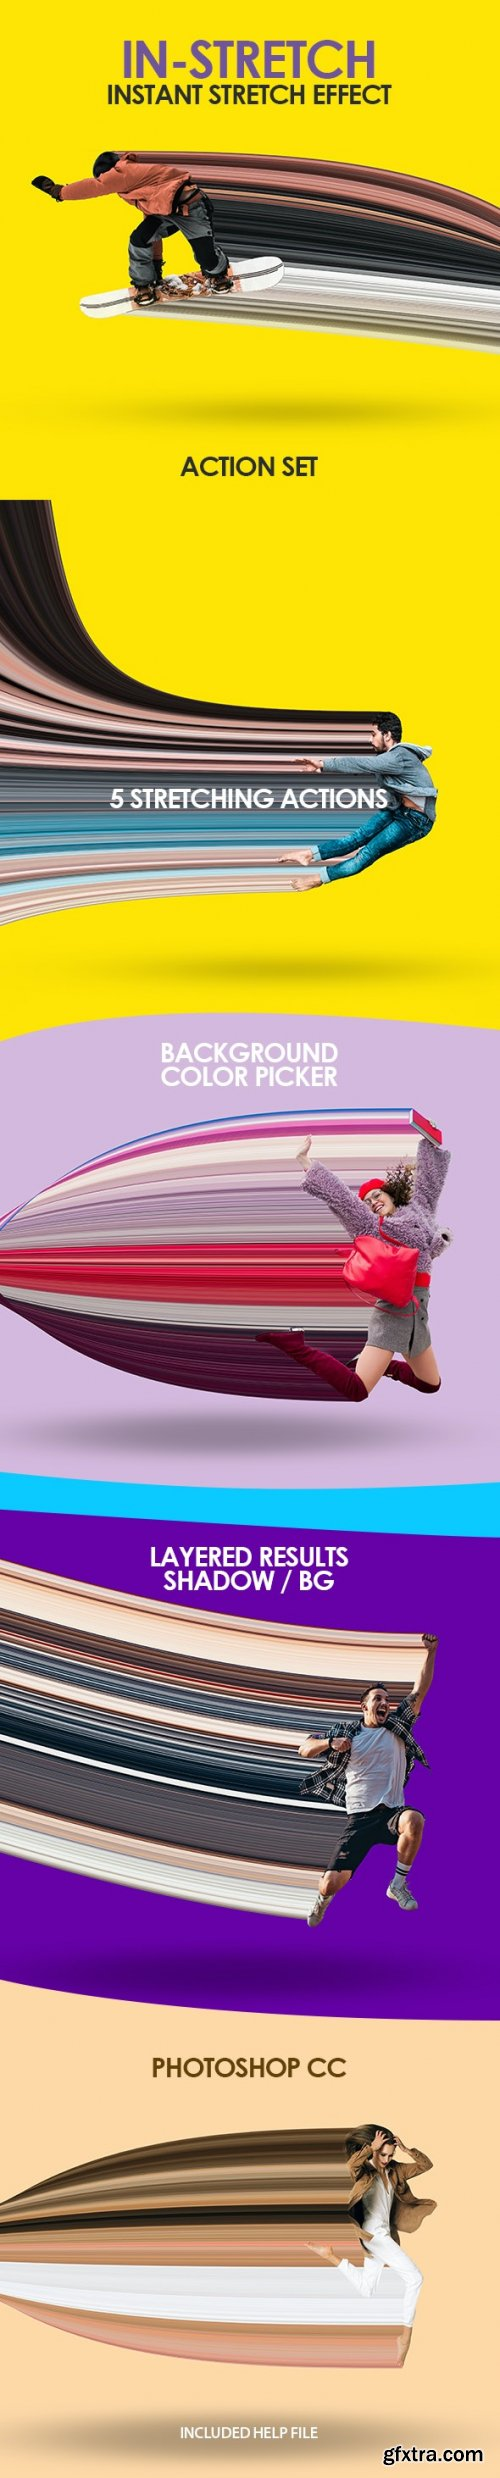 GraphicRiver - InStretch Photo Stretching Action Set 32945747